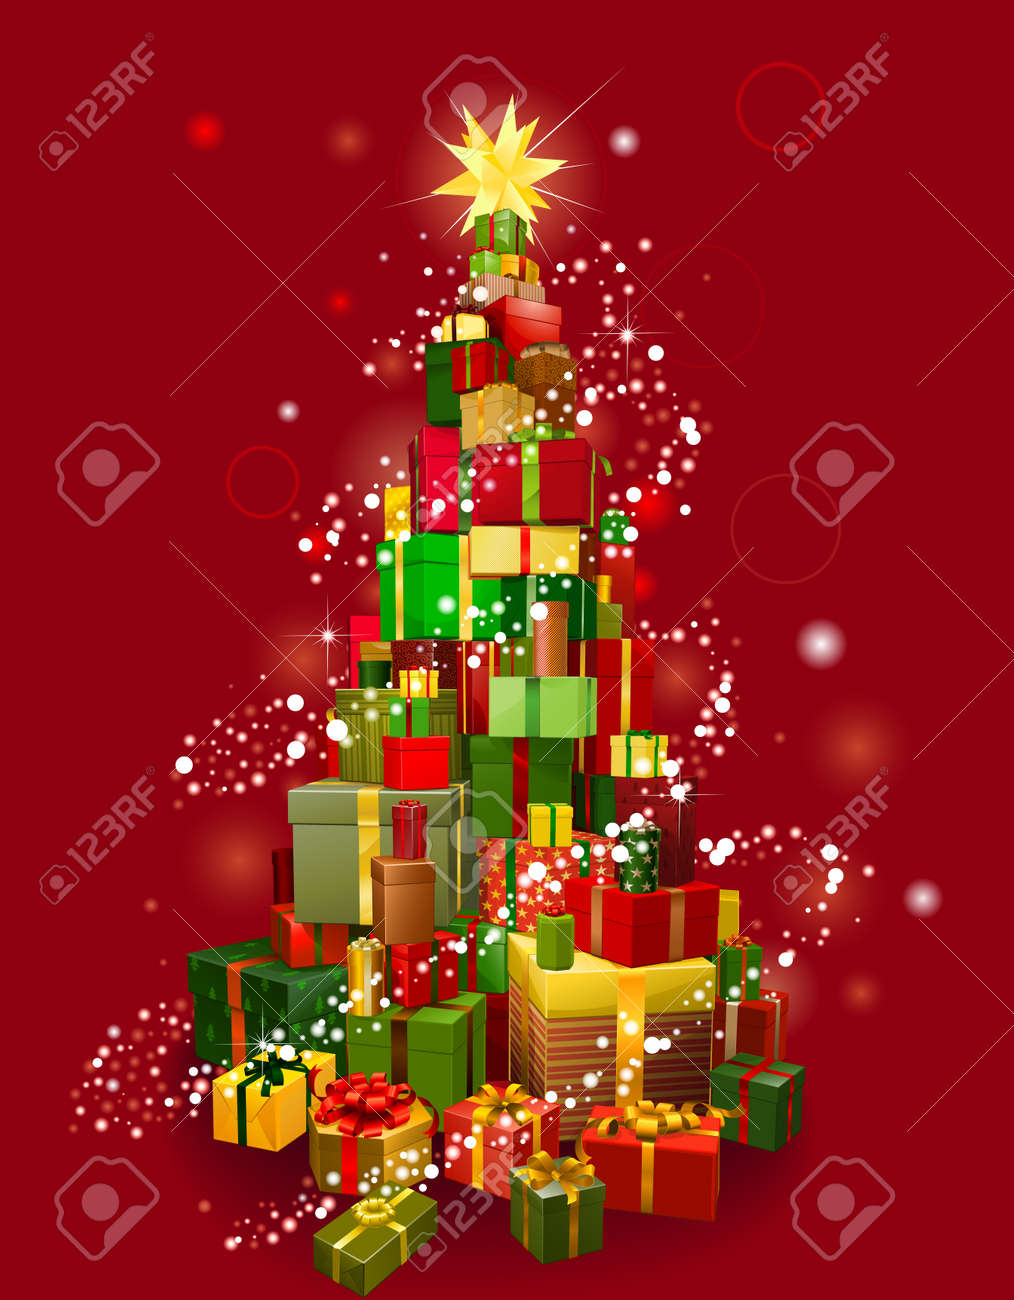 Stack Of Gifts In The Shape Of A Christmas Tree With Lights And Red  Background Stock